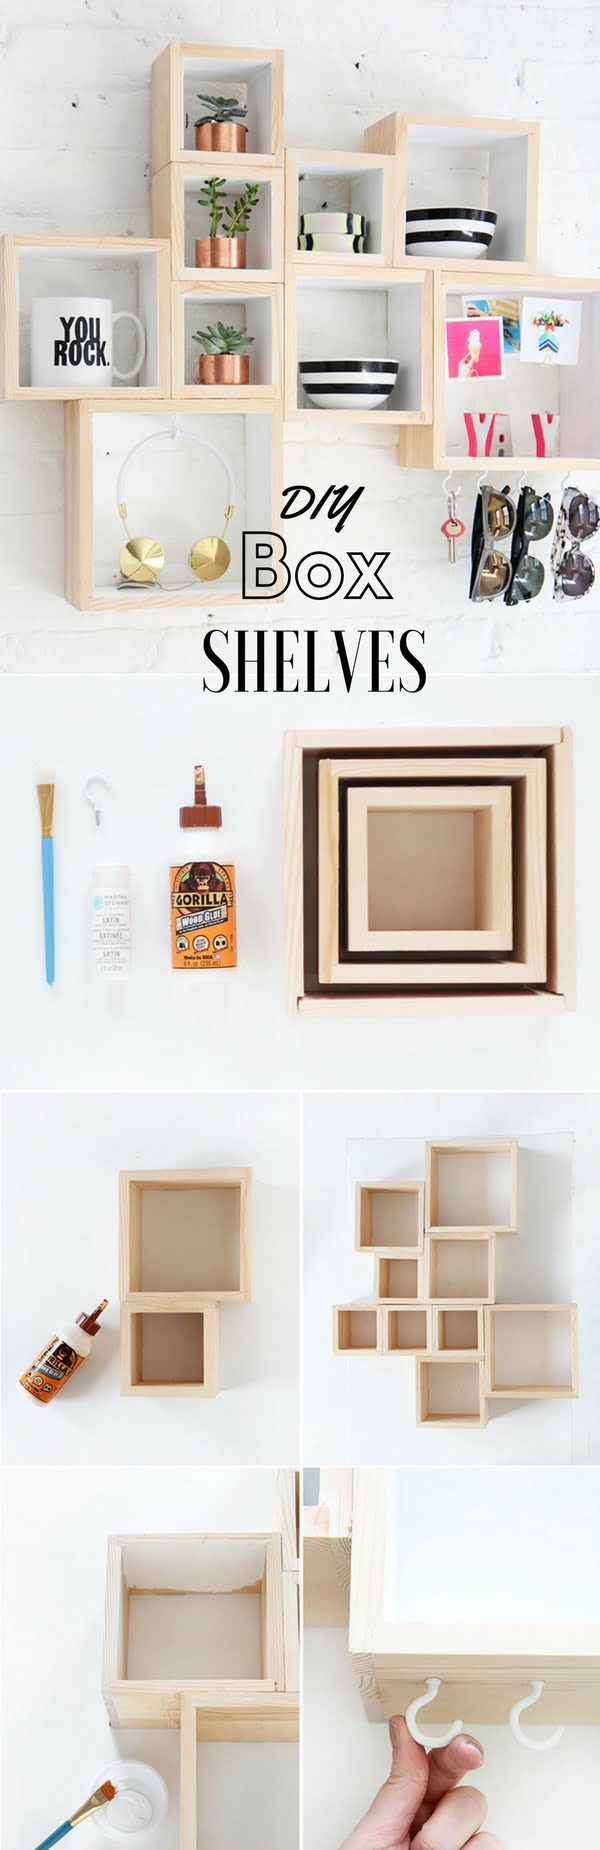 Check out the tutorial: #DIY Box Shelves